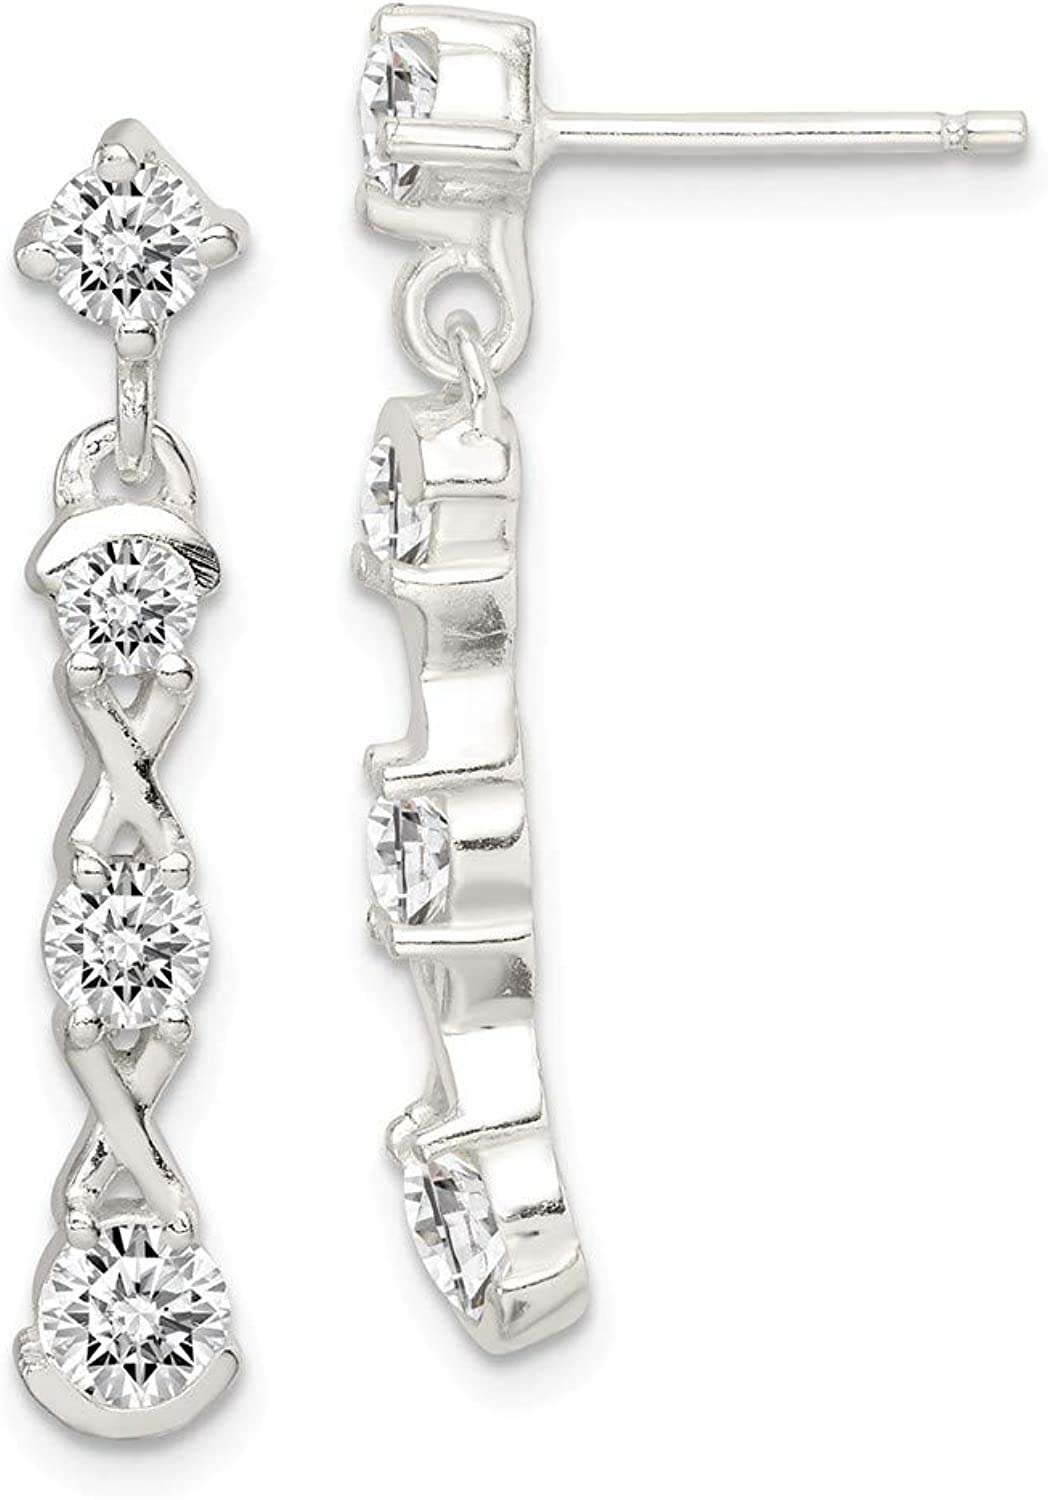 Beautiful Sterling silver 925 sterling Sterling Silver Polished CZ Post Dangle Earrings